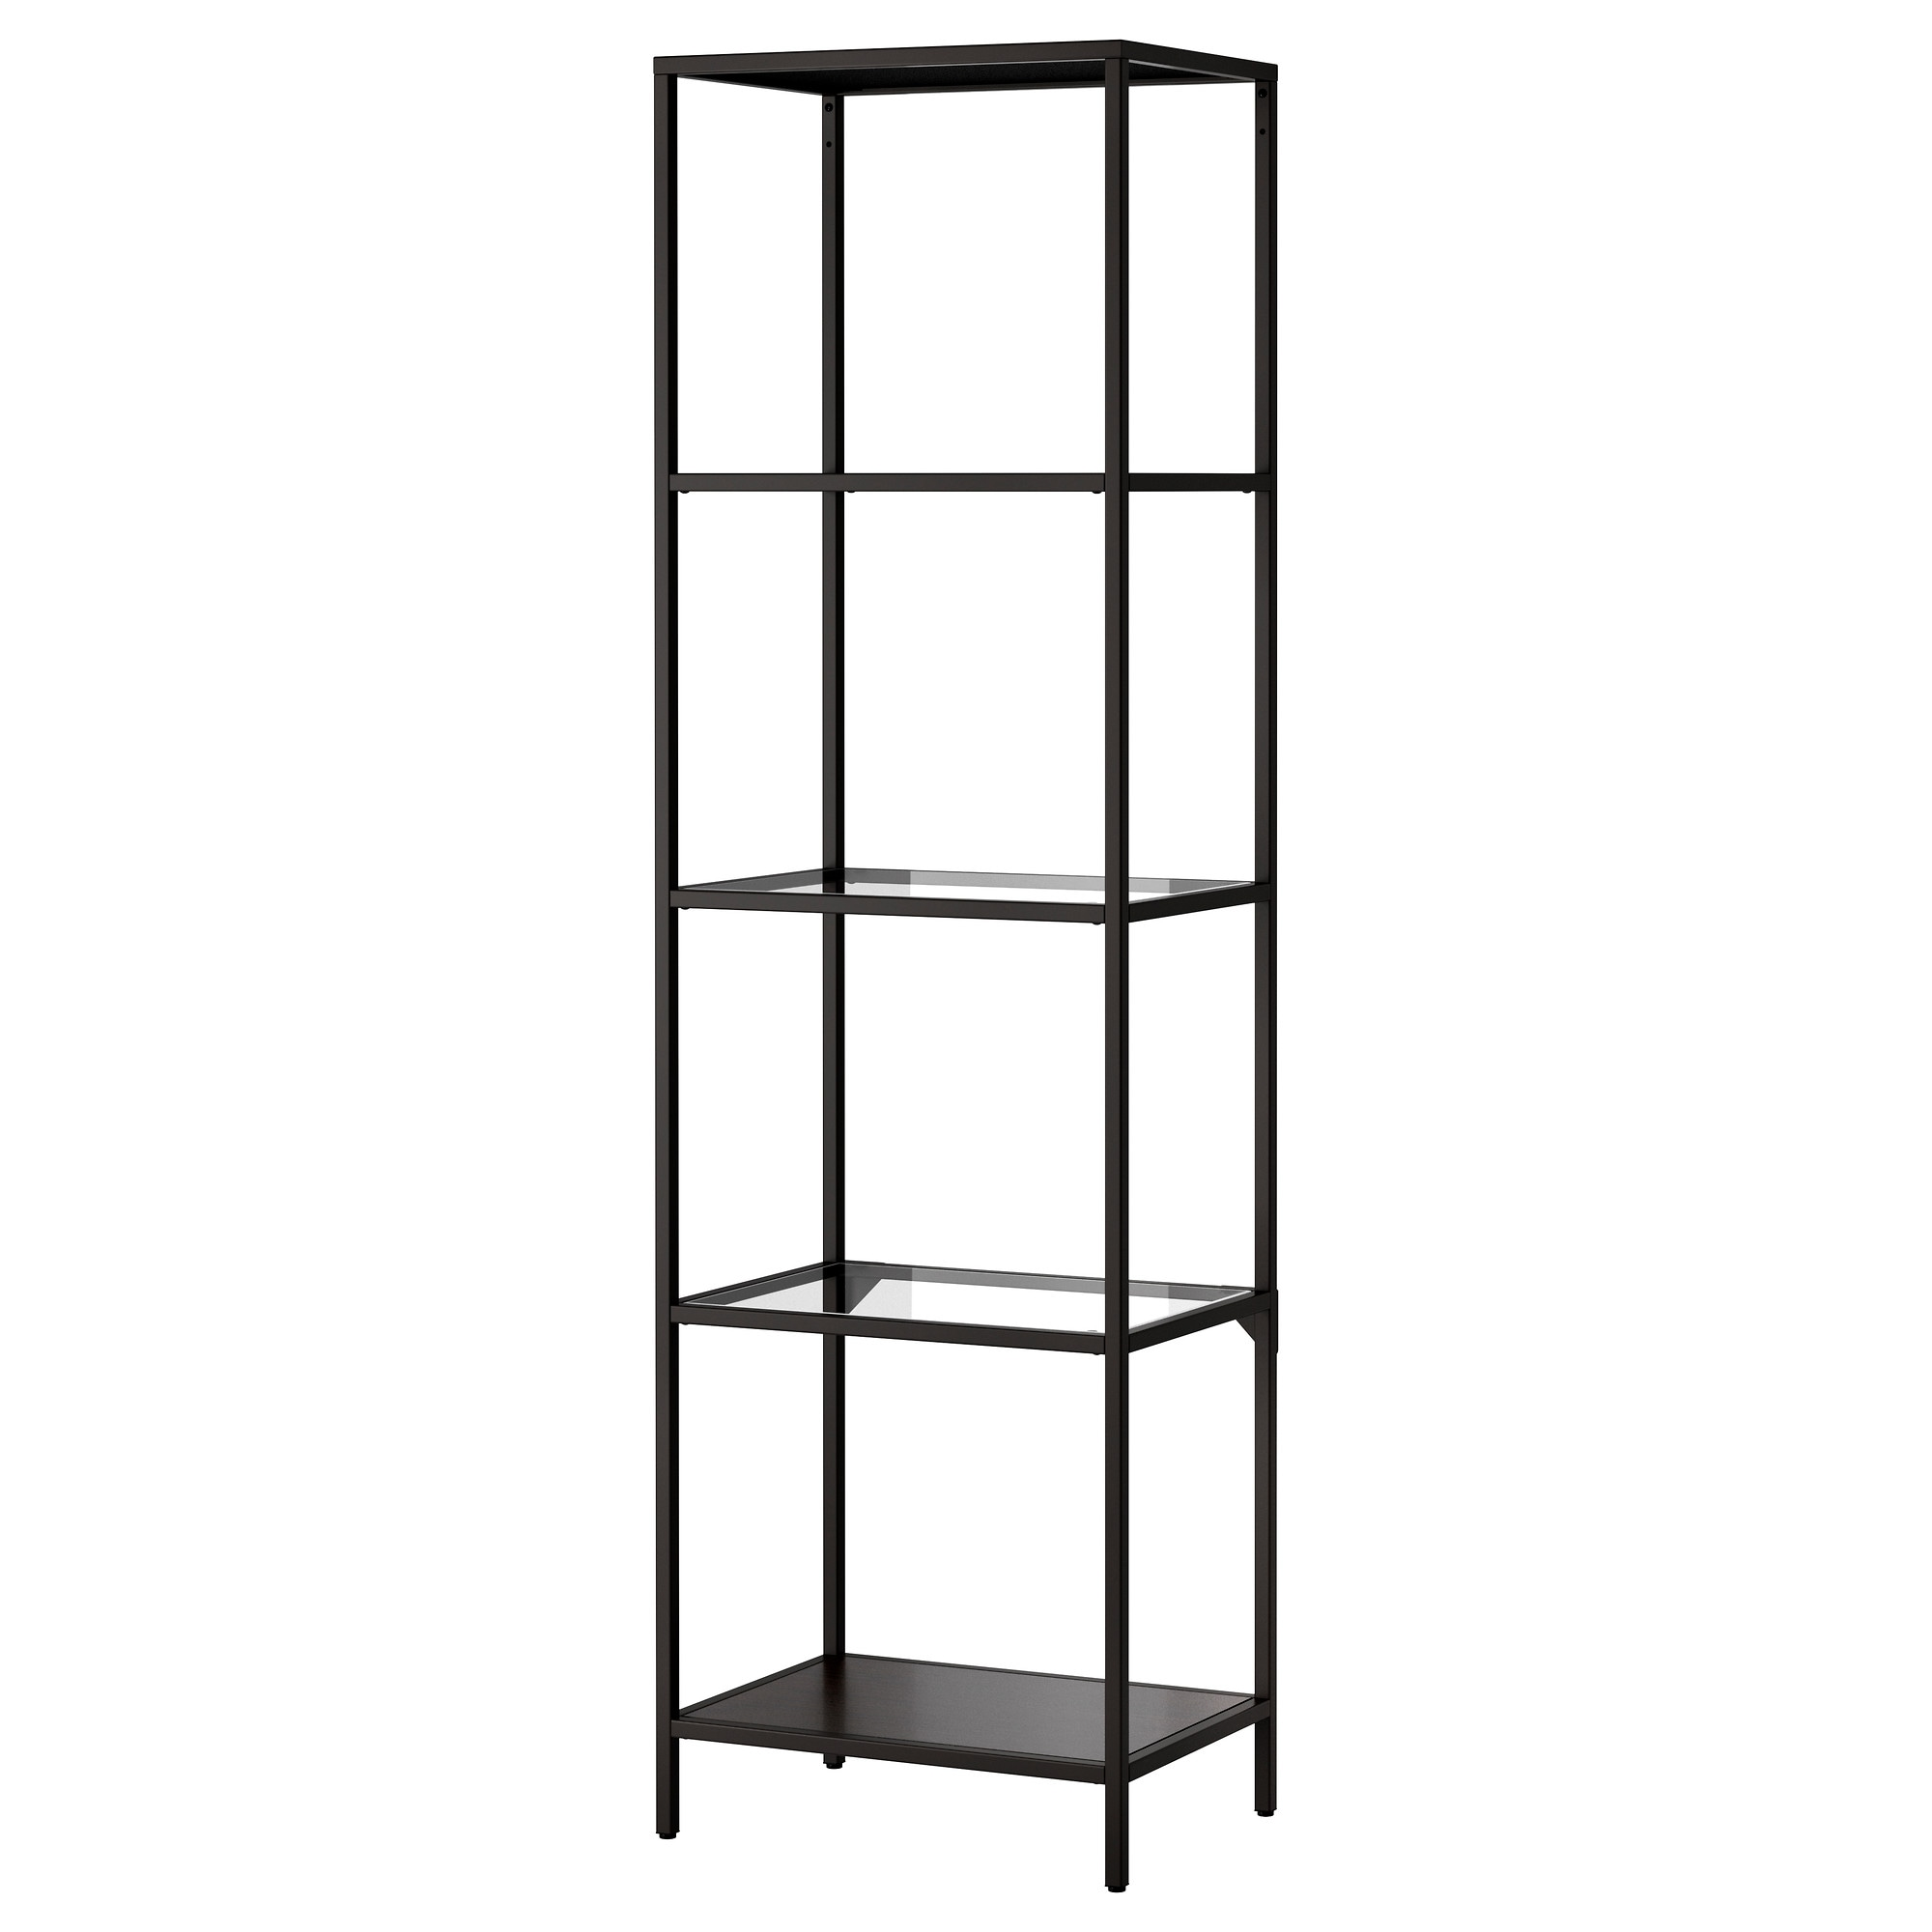 VITTSJÖ Shelf Unit   Black Brown/glass   IKEA Pictures